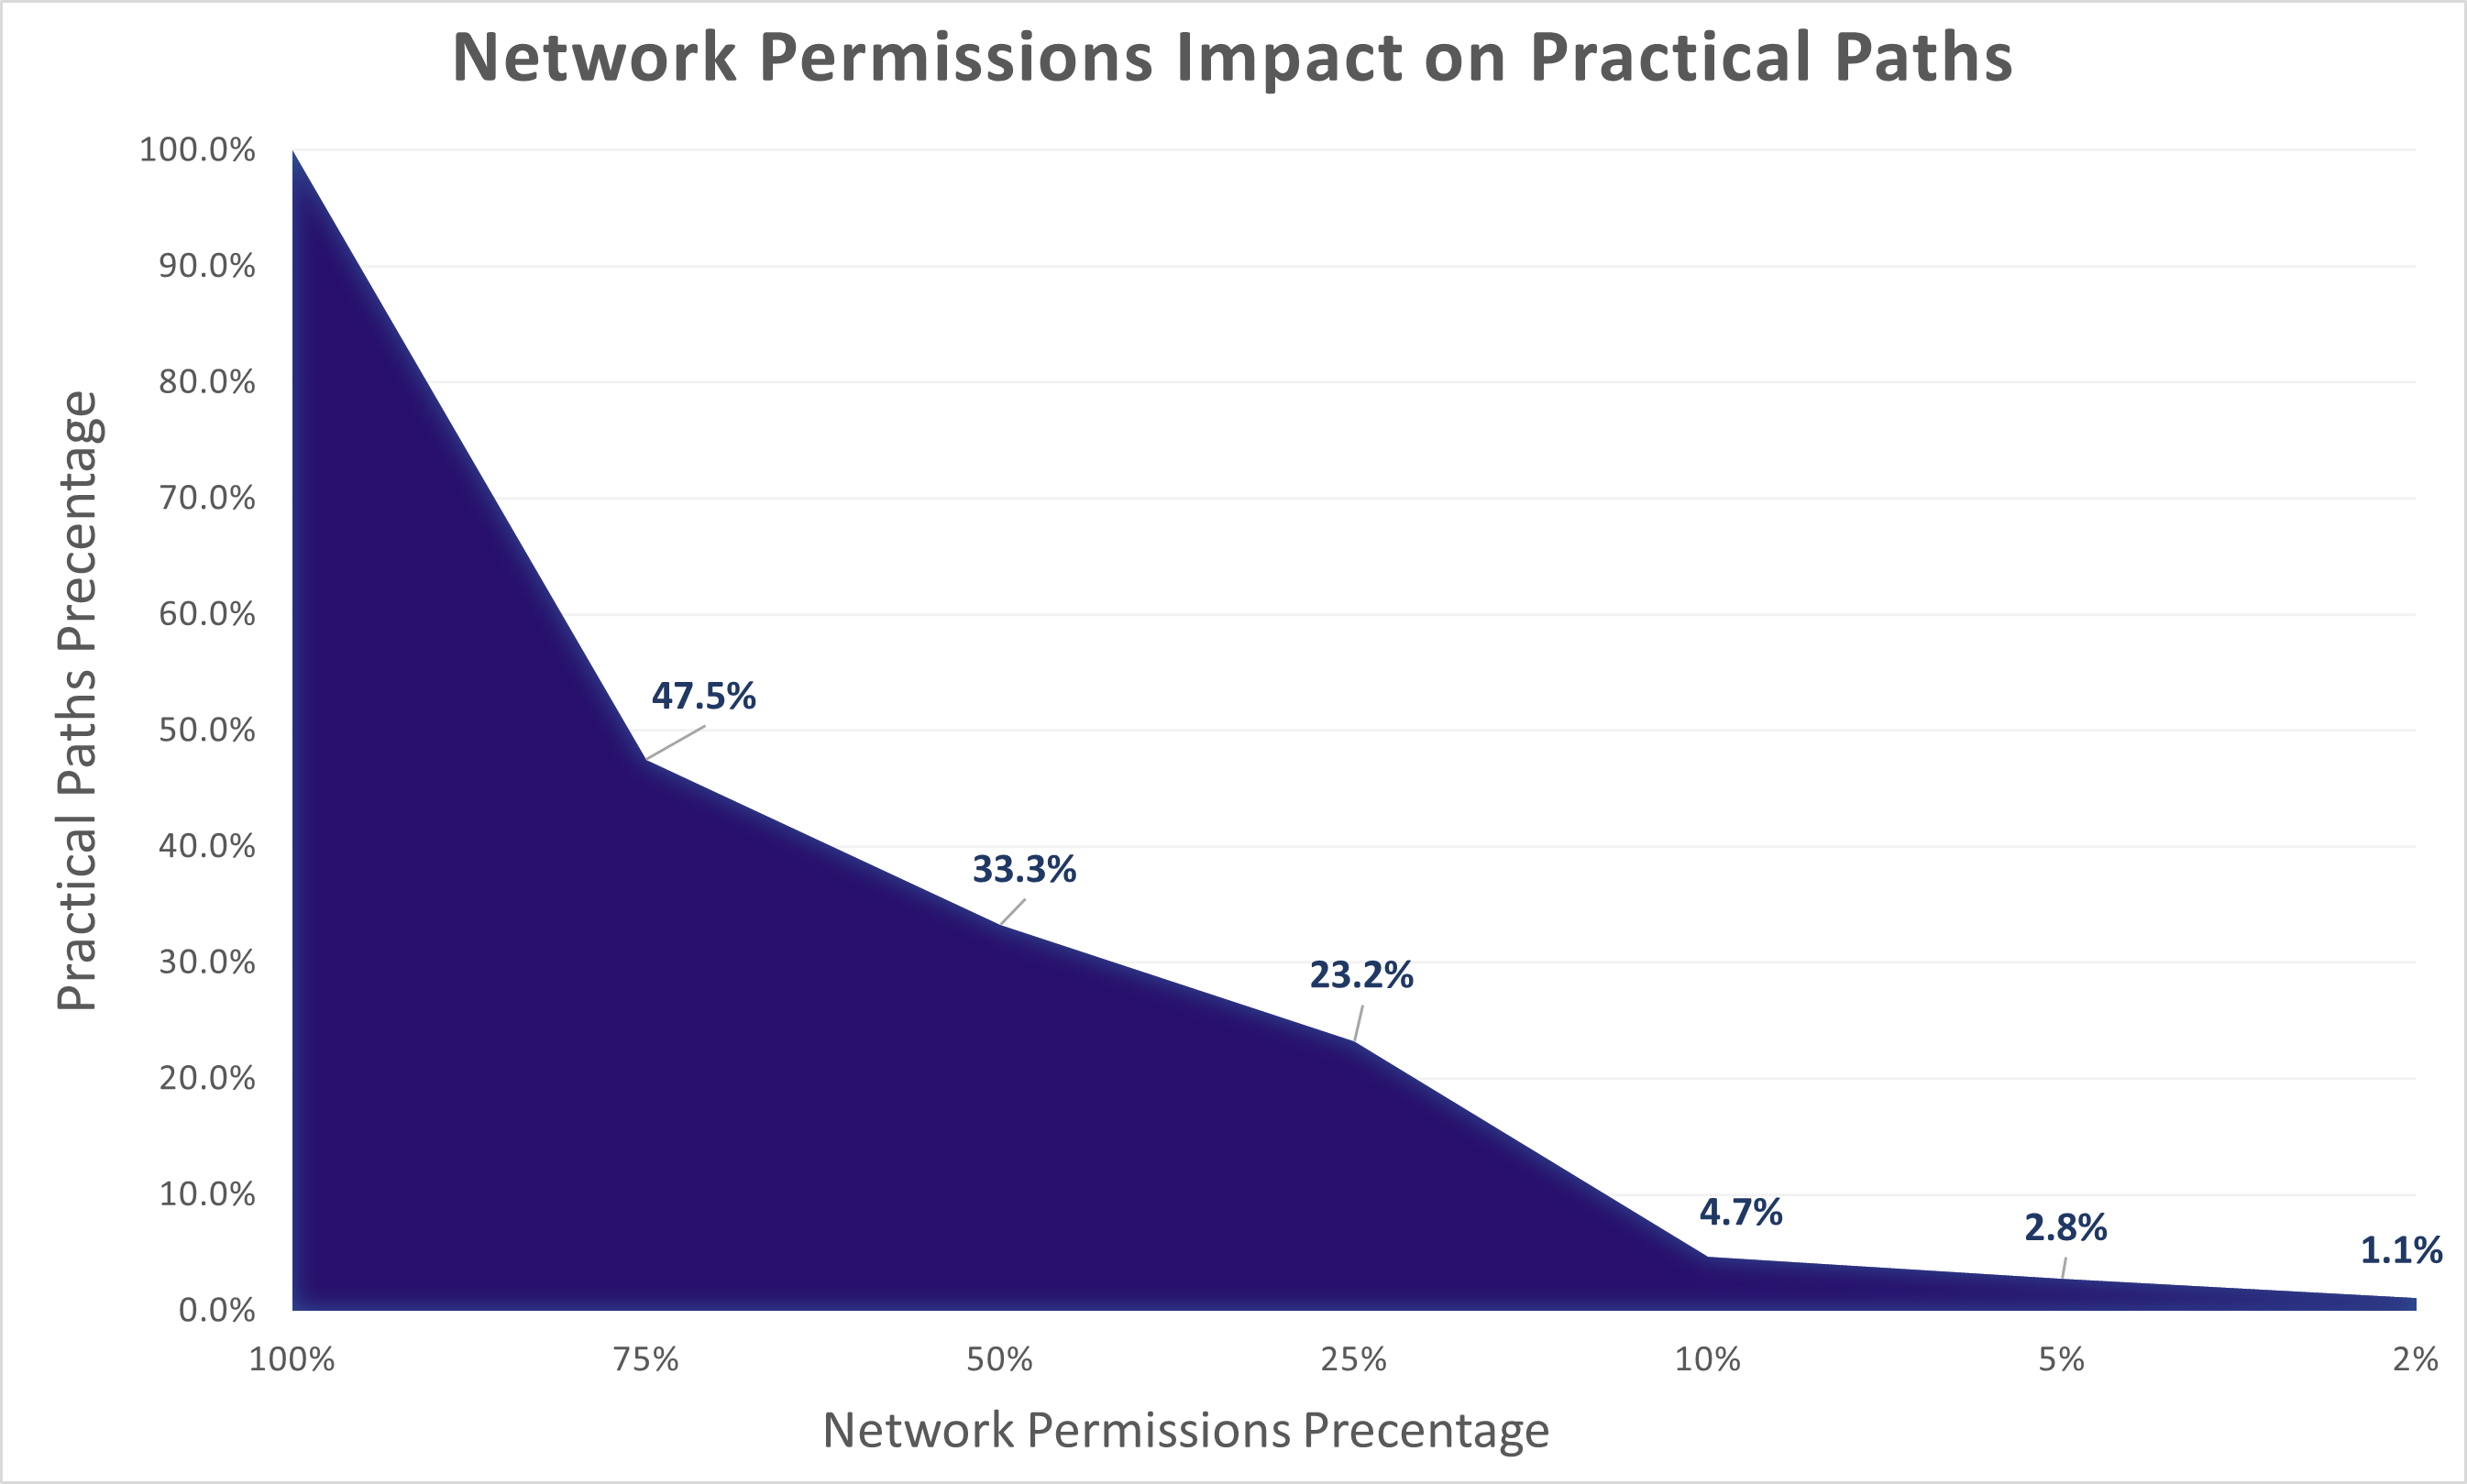 LPN impact on precentage of practical paths